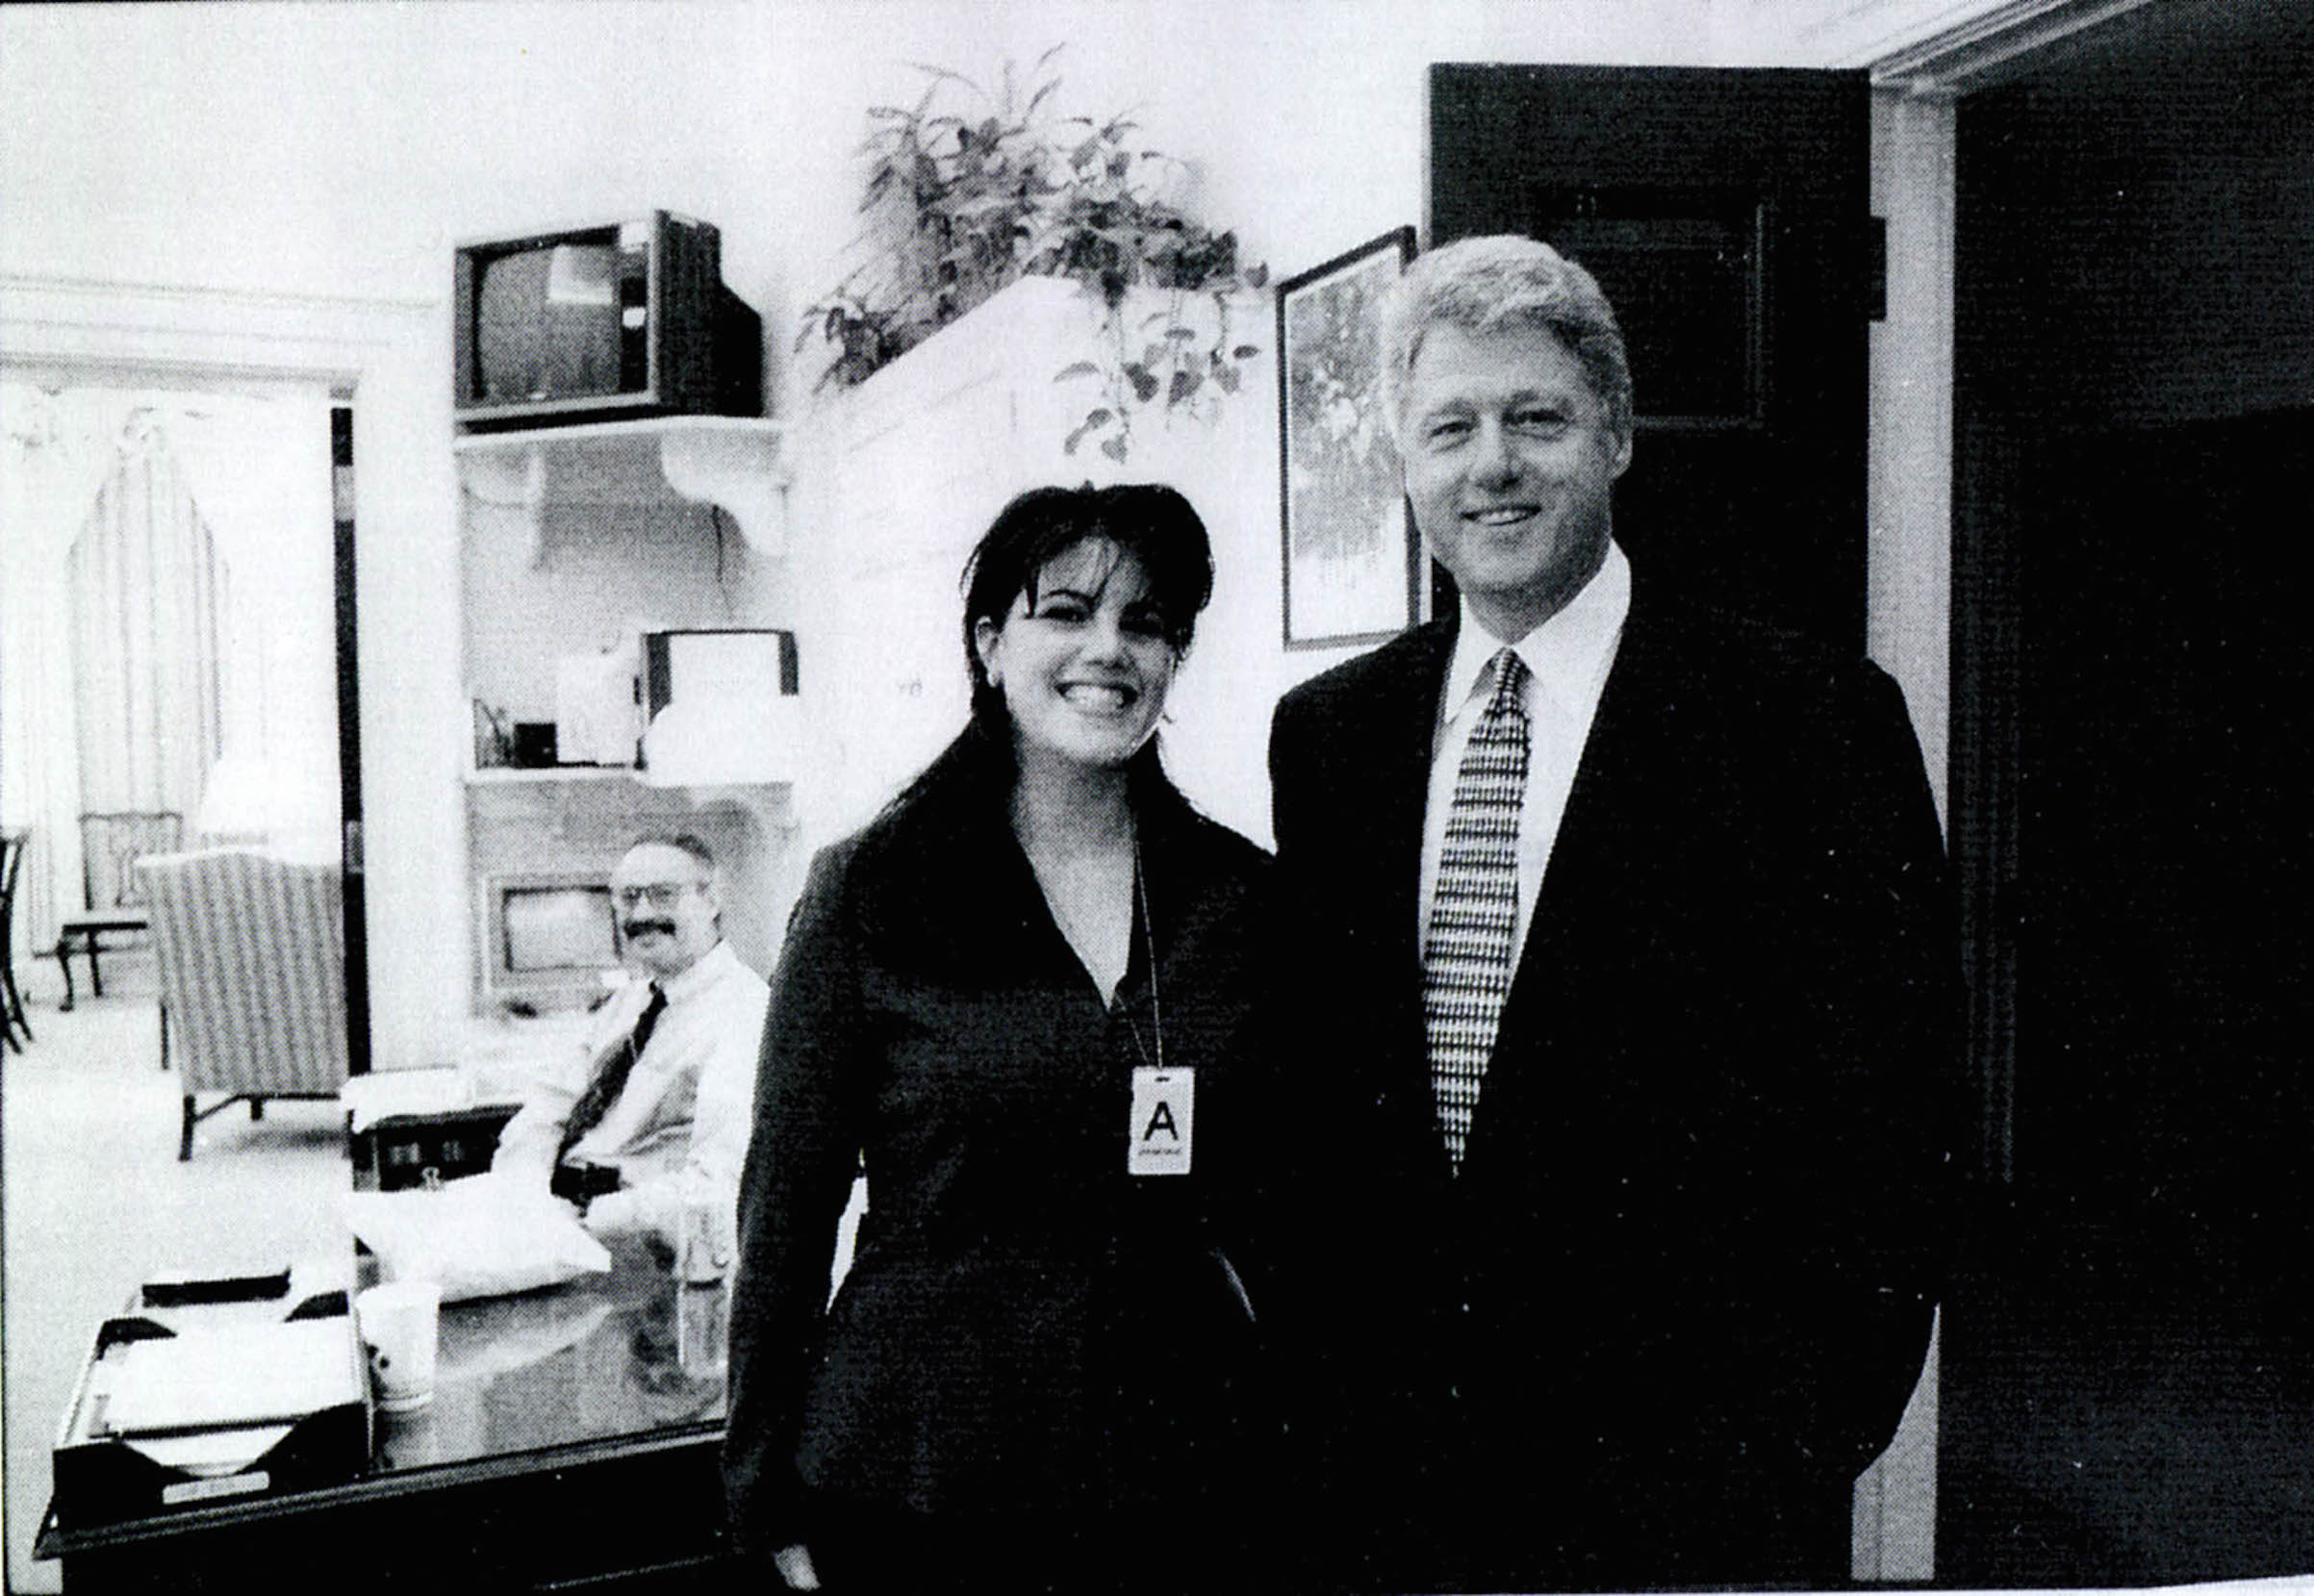 A photograph showing former White House intern Monica Lewinsky meeting President Bill Clinton at a White House function, submitted as evidence in documents by the Starr investigation and released by the House Judiciary committee Sept. 21, 1998.